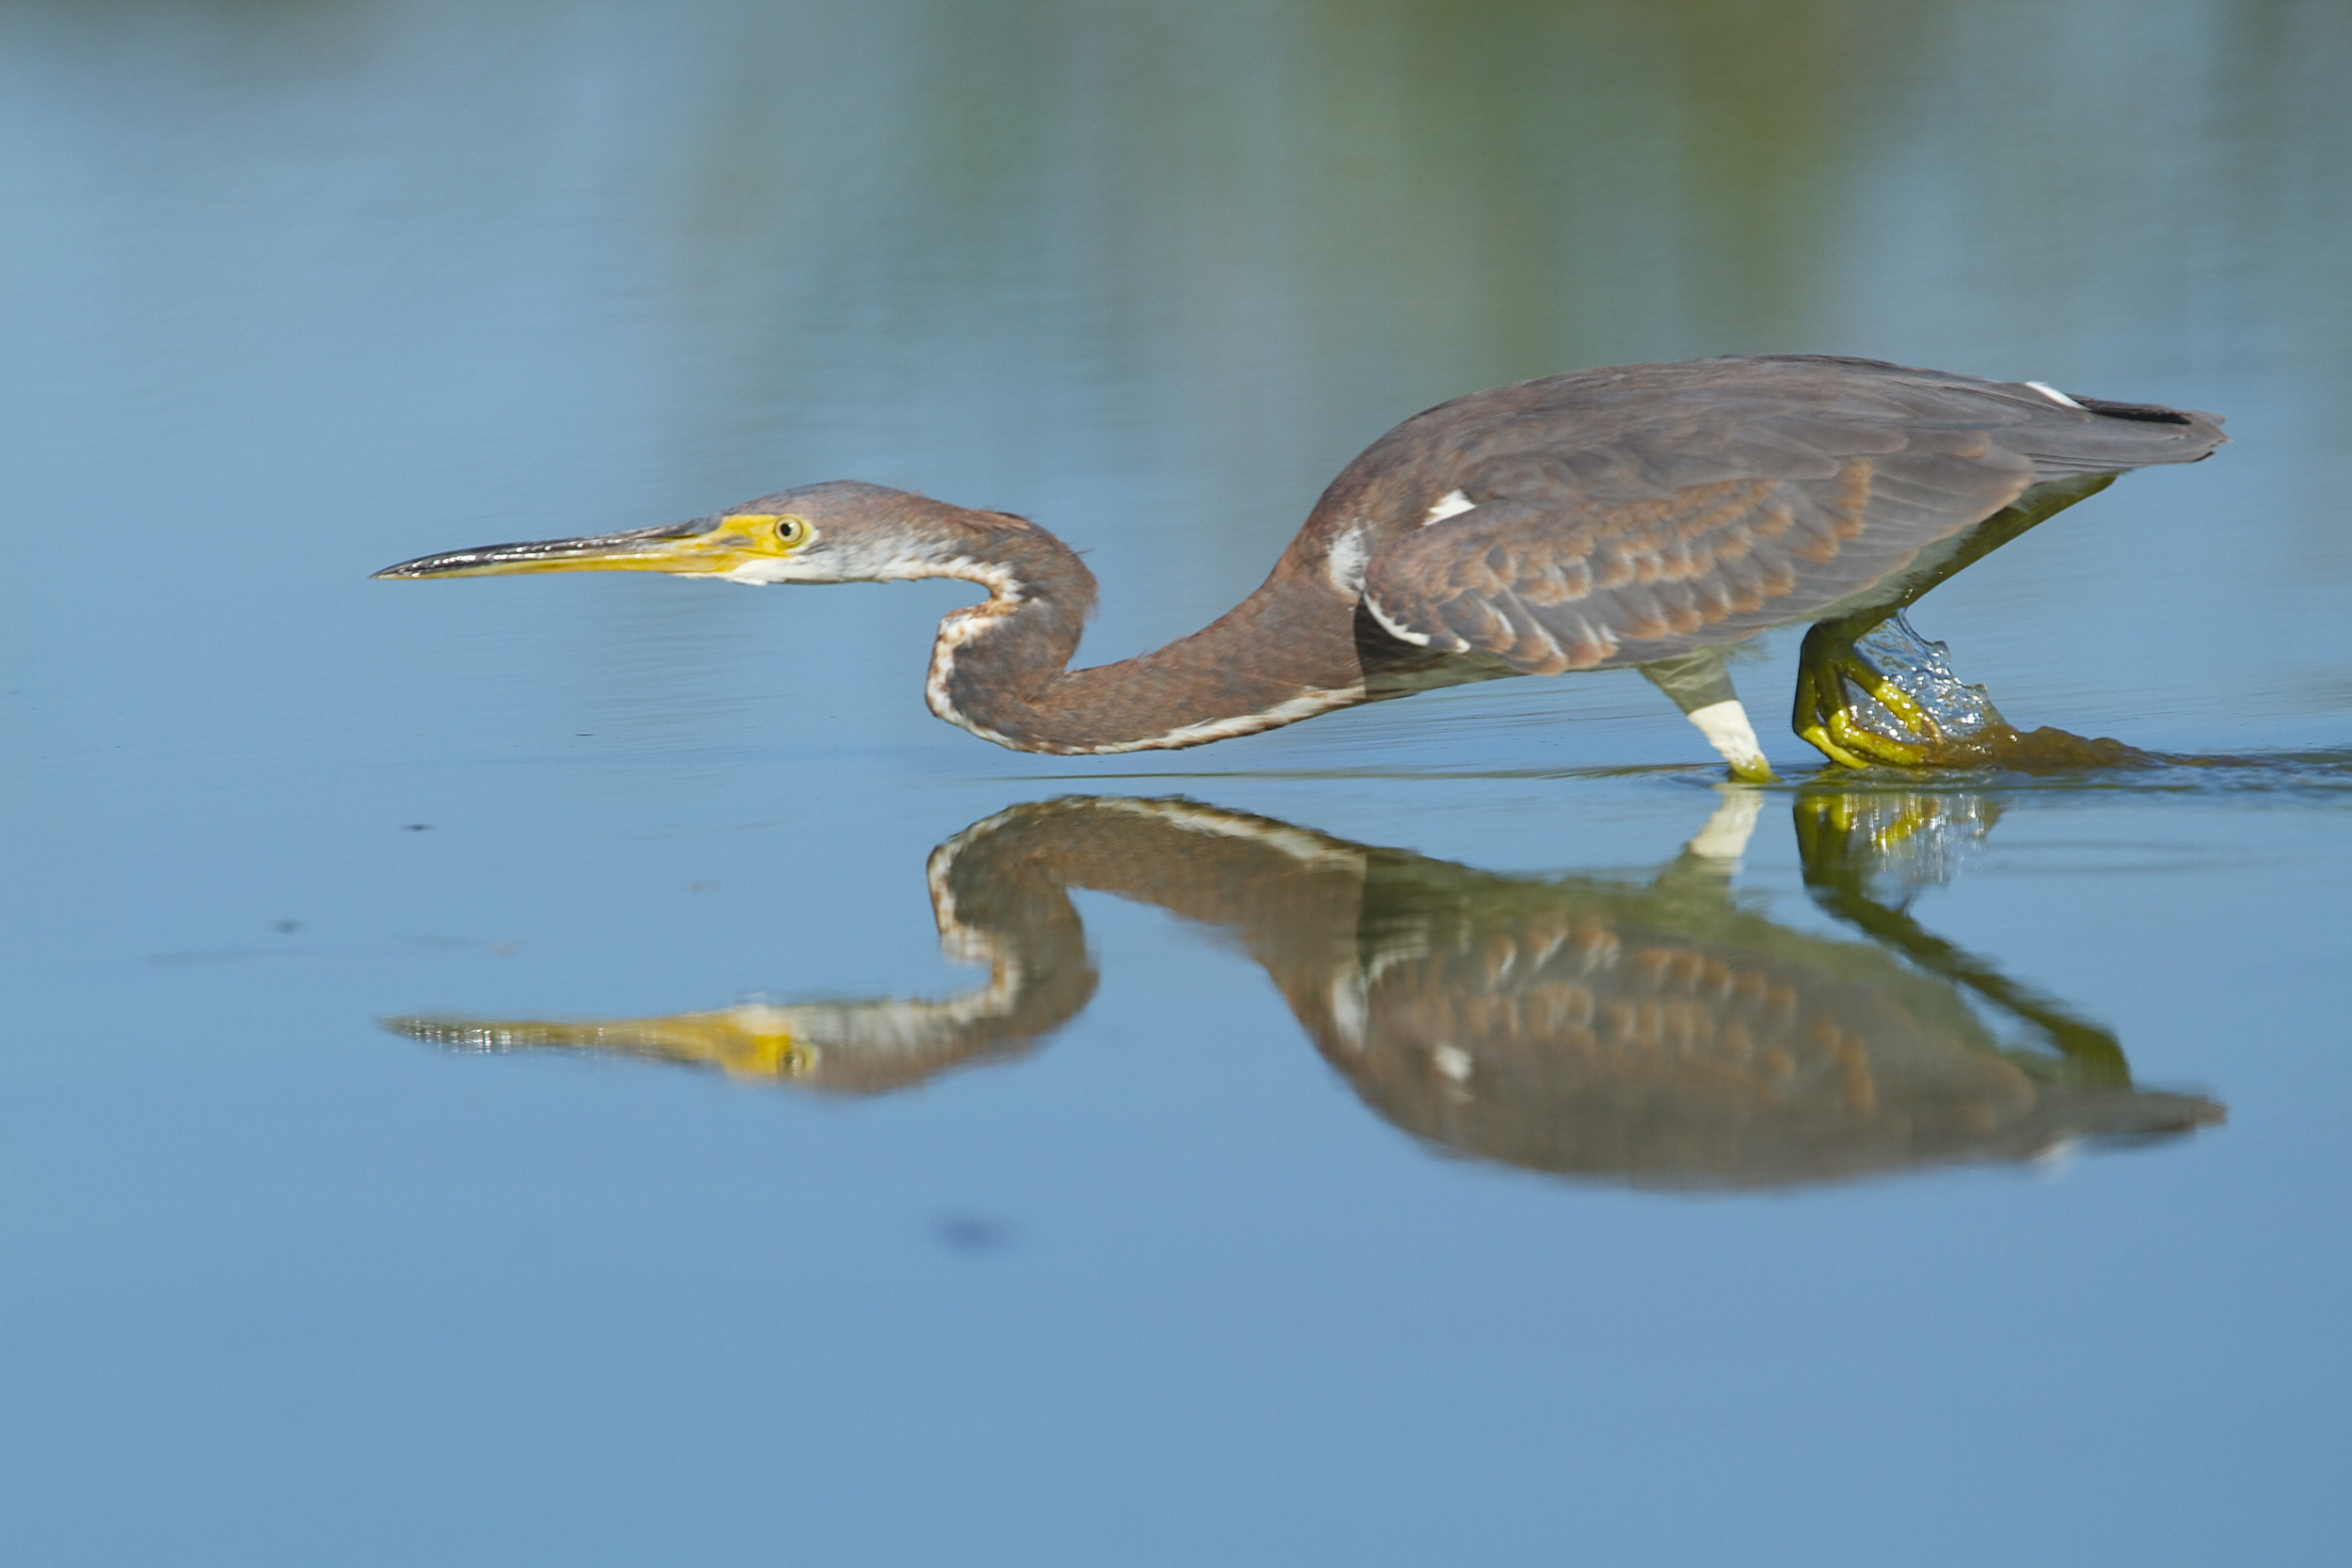 The mighty minnow hunter, a Tricolored Heron about to strike.